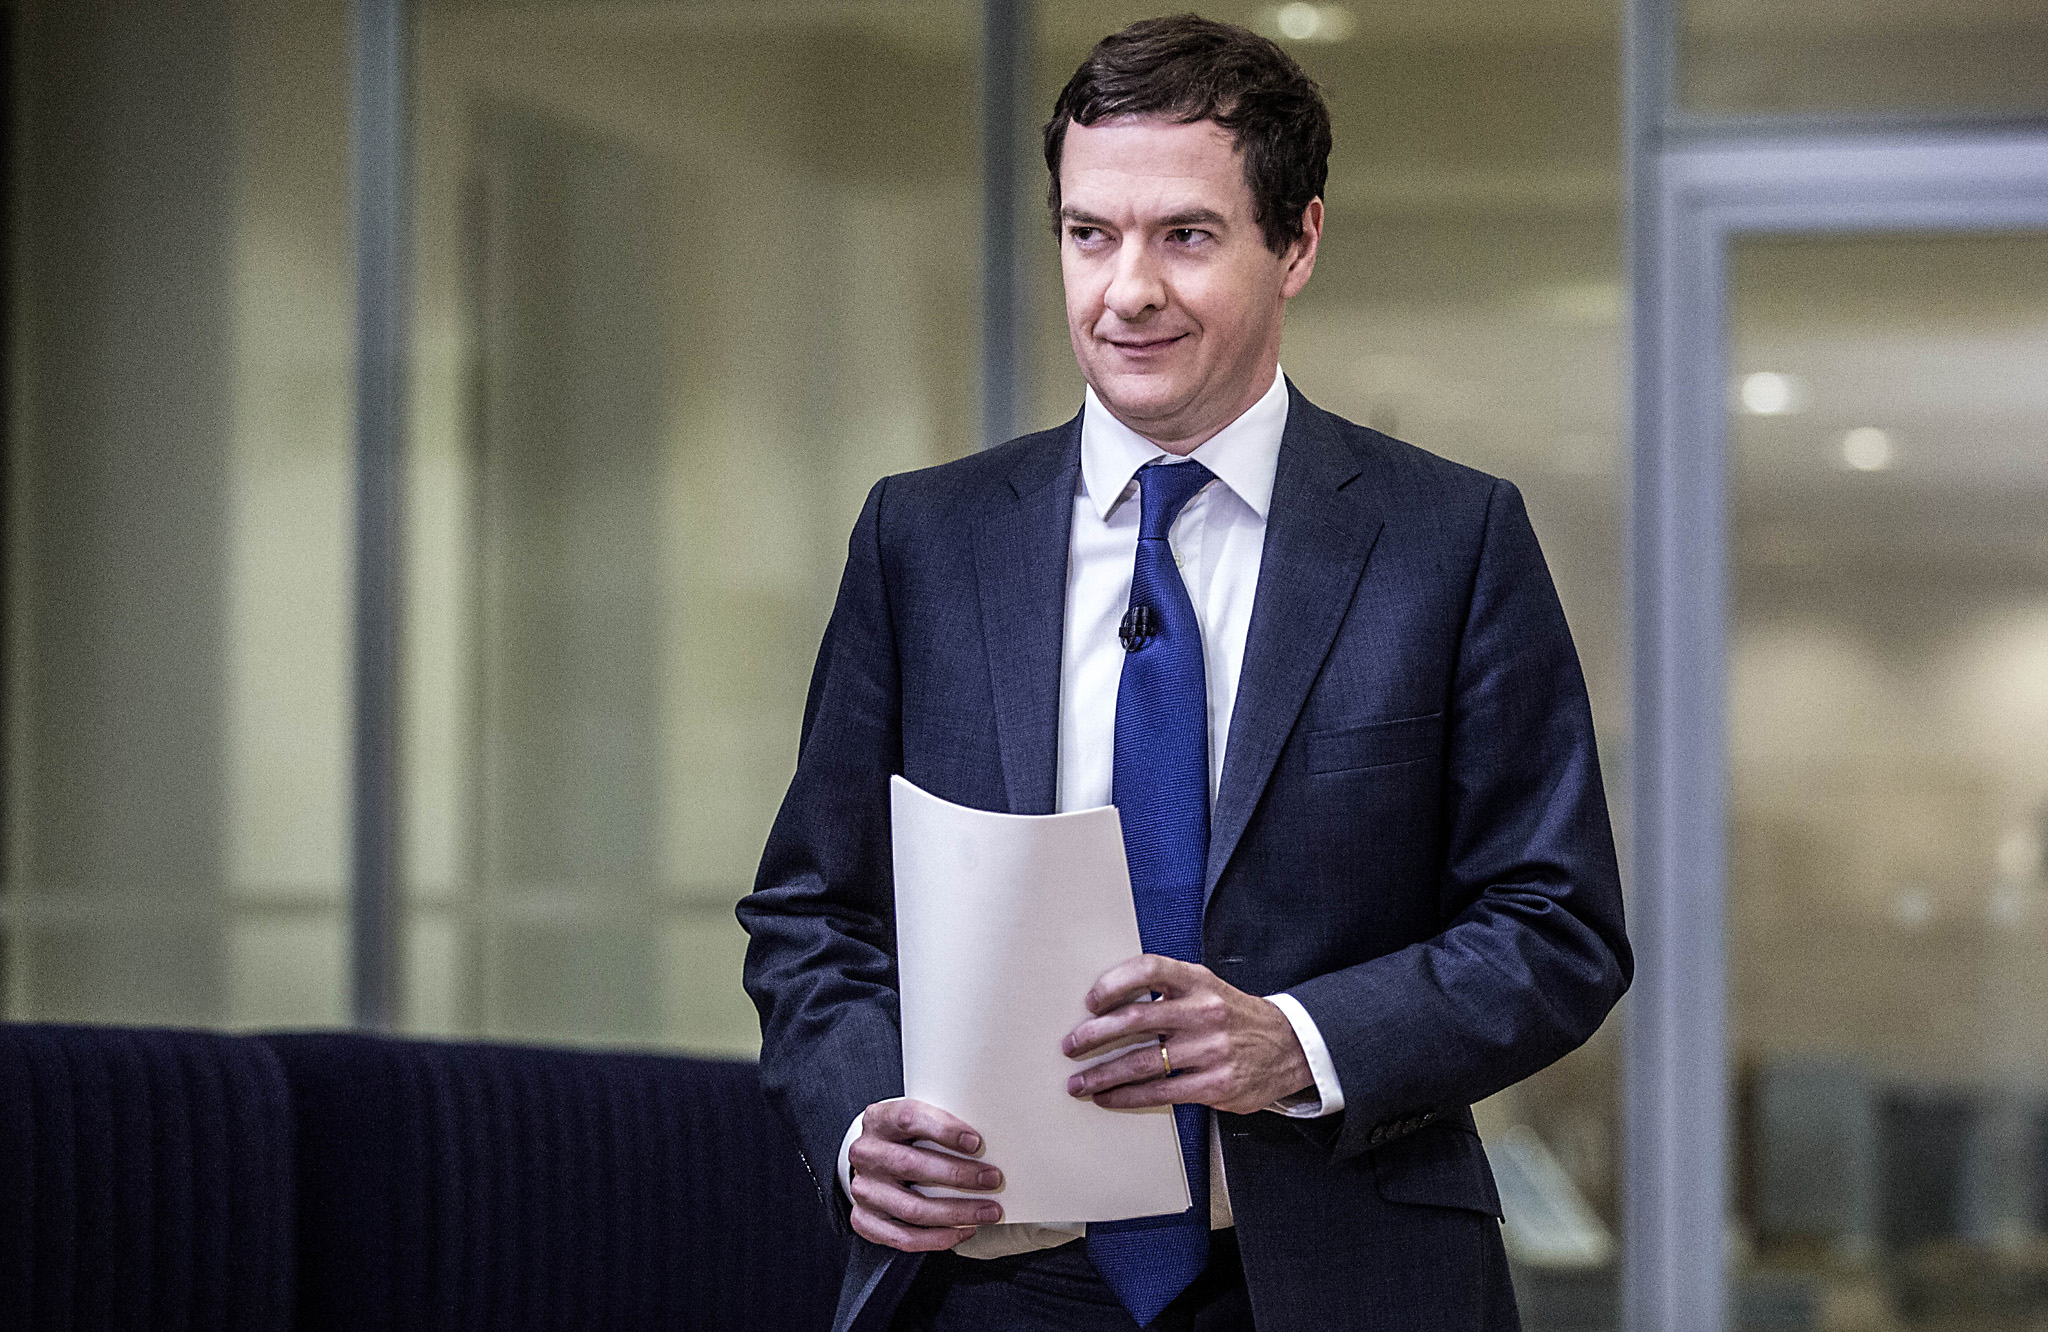 """LONDON, UNITED KINGDOM - JUNE 27: Chancellor George Osborne speaks at The Treasury, where he moved to try to calm market turmoil triggered by the pro-Brexit vote on June 27, 2016 in London, United Kingdom.  Mr Osborne spoke ahead of the start of financial trading and outlined how the Government will """"protect the national interest"""" after the UK voted to leave the EU. (Photo by Richard Pohle - WPA Pool/Gettty Images)"""